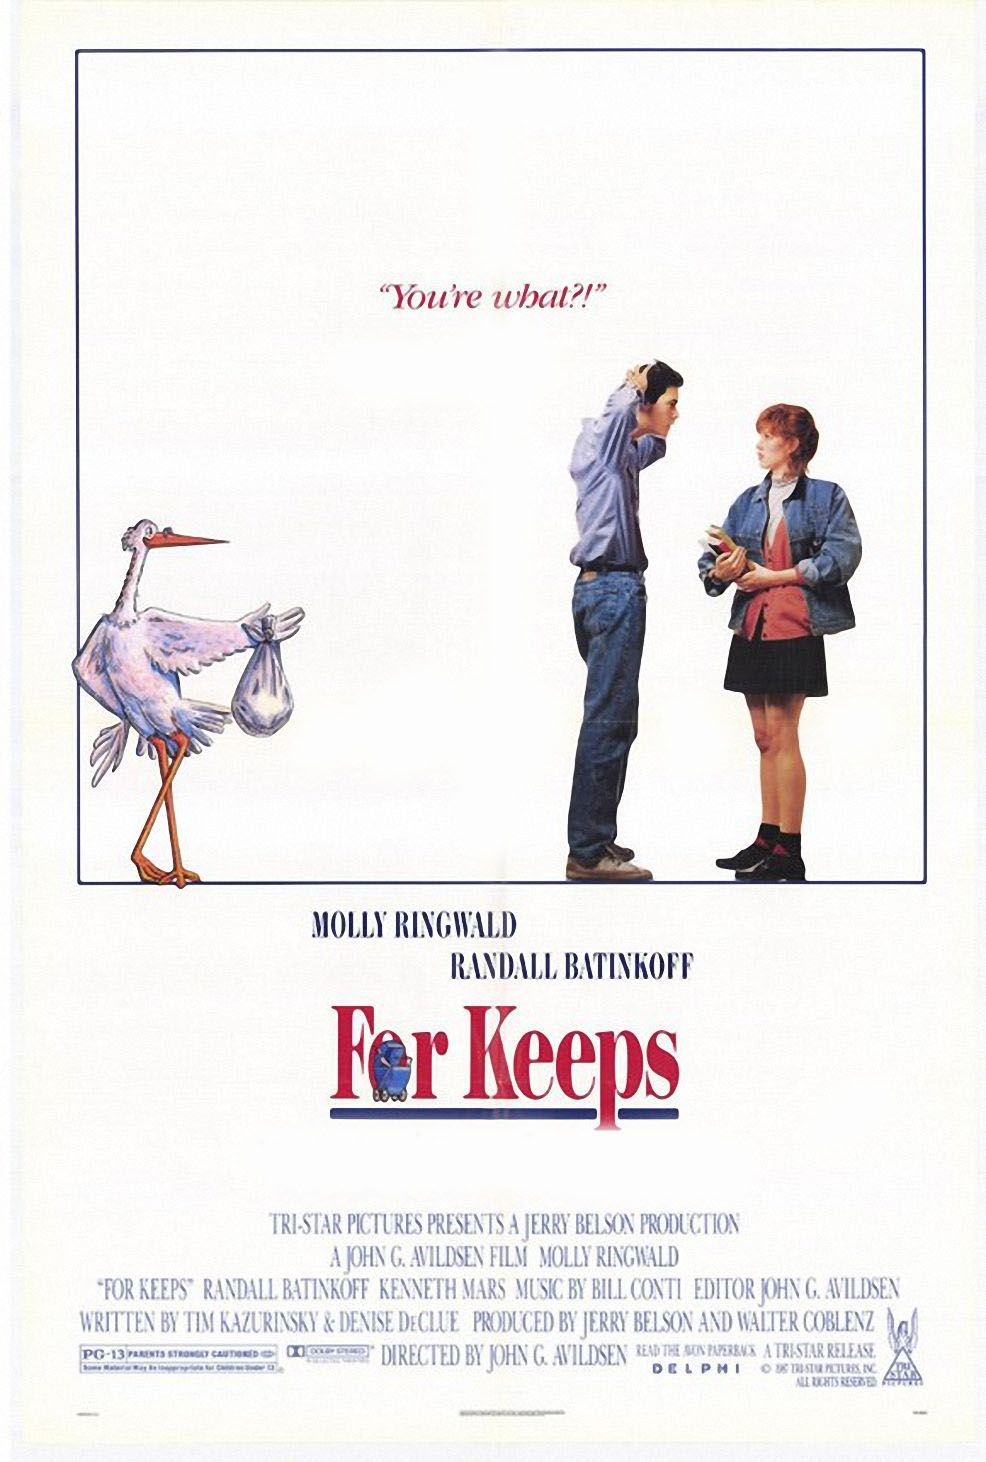 Is Randall Batinkoff Married Stunning for keeps? (1988) stars: molly ringwald, randall batinkoff